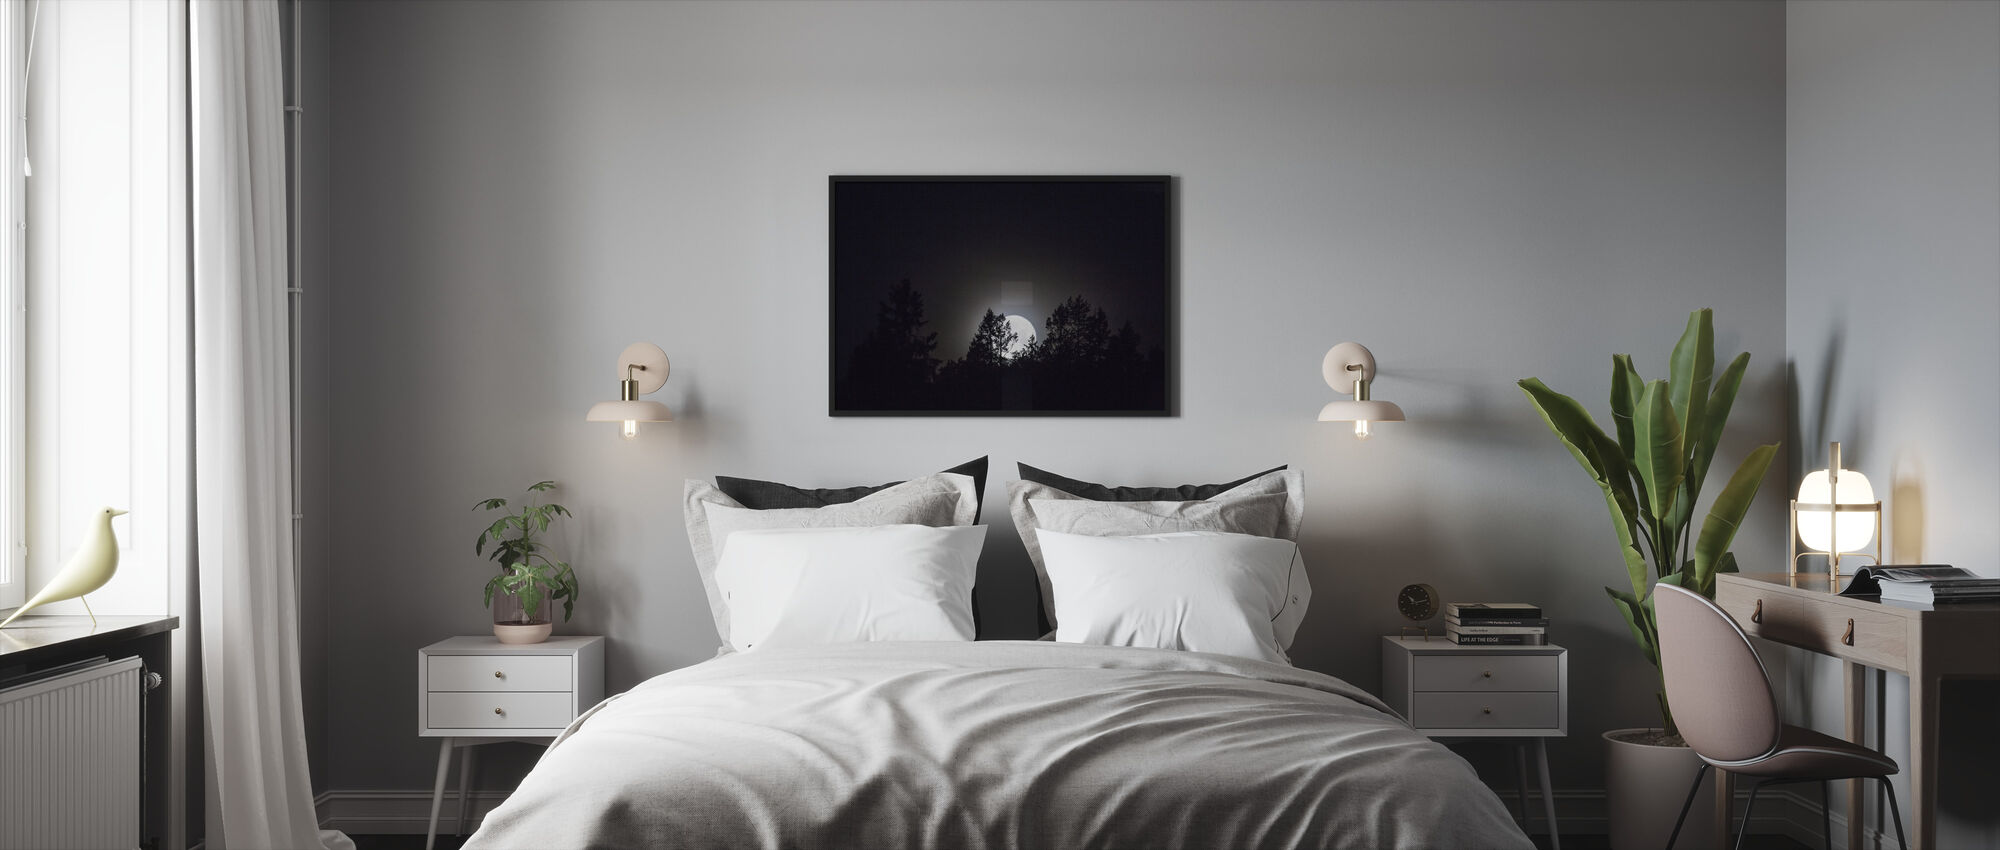 Moonlight over Medelpad, Sweden, Europe - Framed print - Bedroom